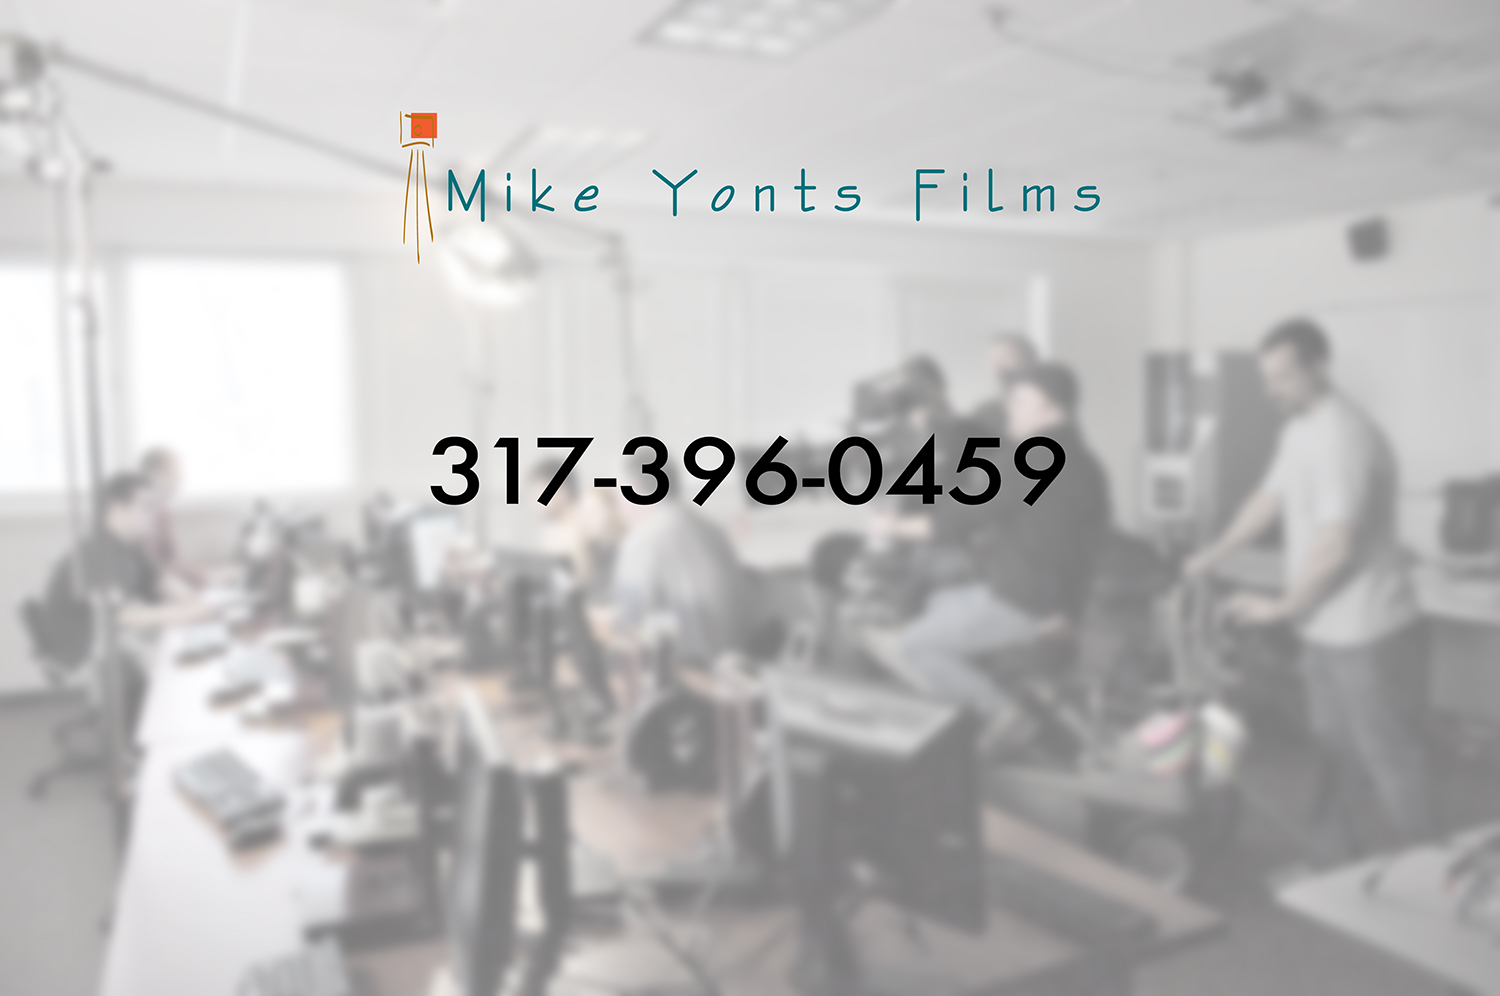 Mike Yonts Films Contact.jpg